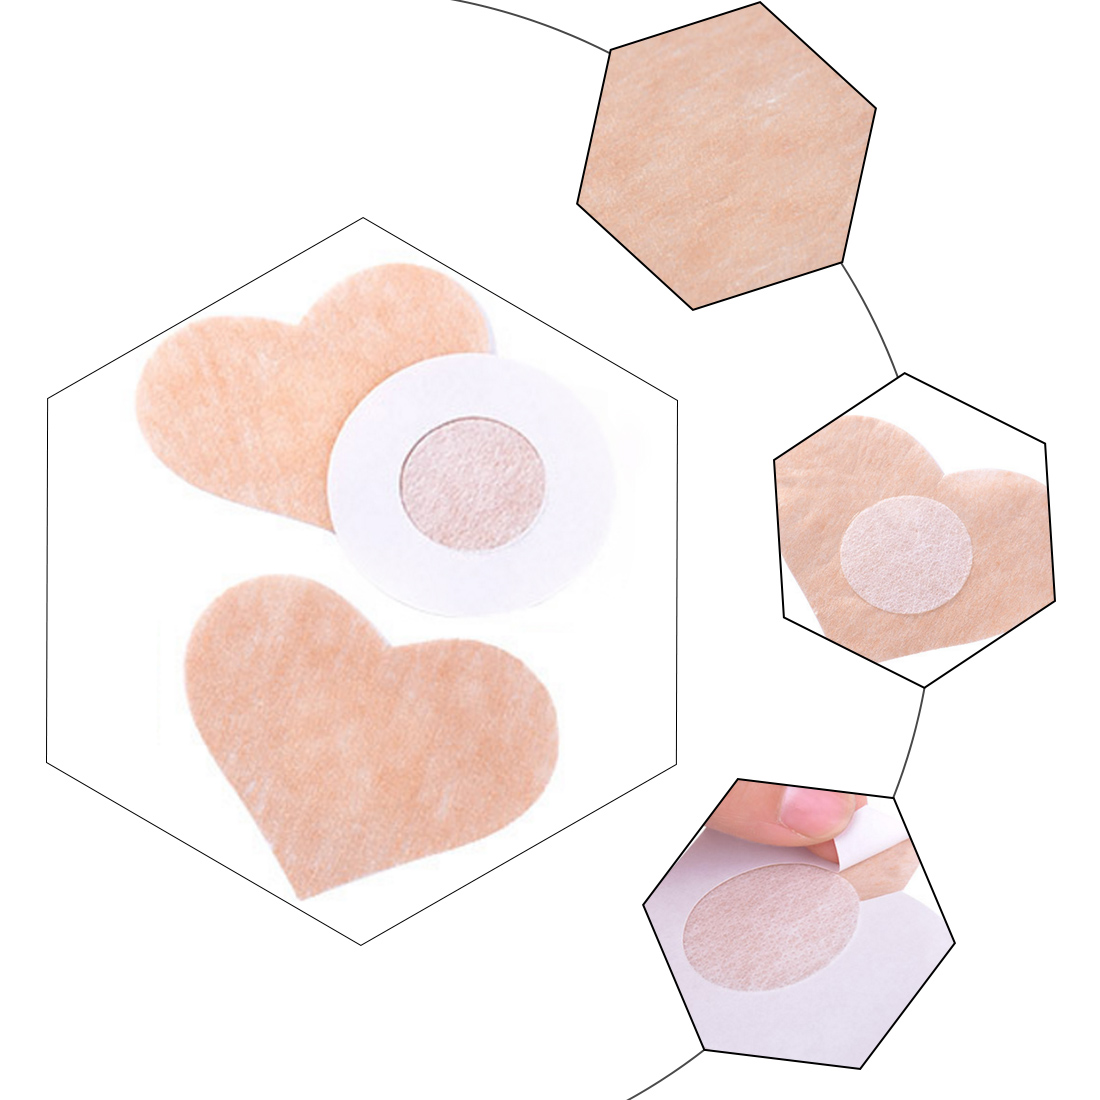 HOT 10 Pcs=5Pair Breast Petals Sexy Disposable Soft Silicone Nipple Cover Bra Pad Pasties For Women Intimates Accessories